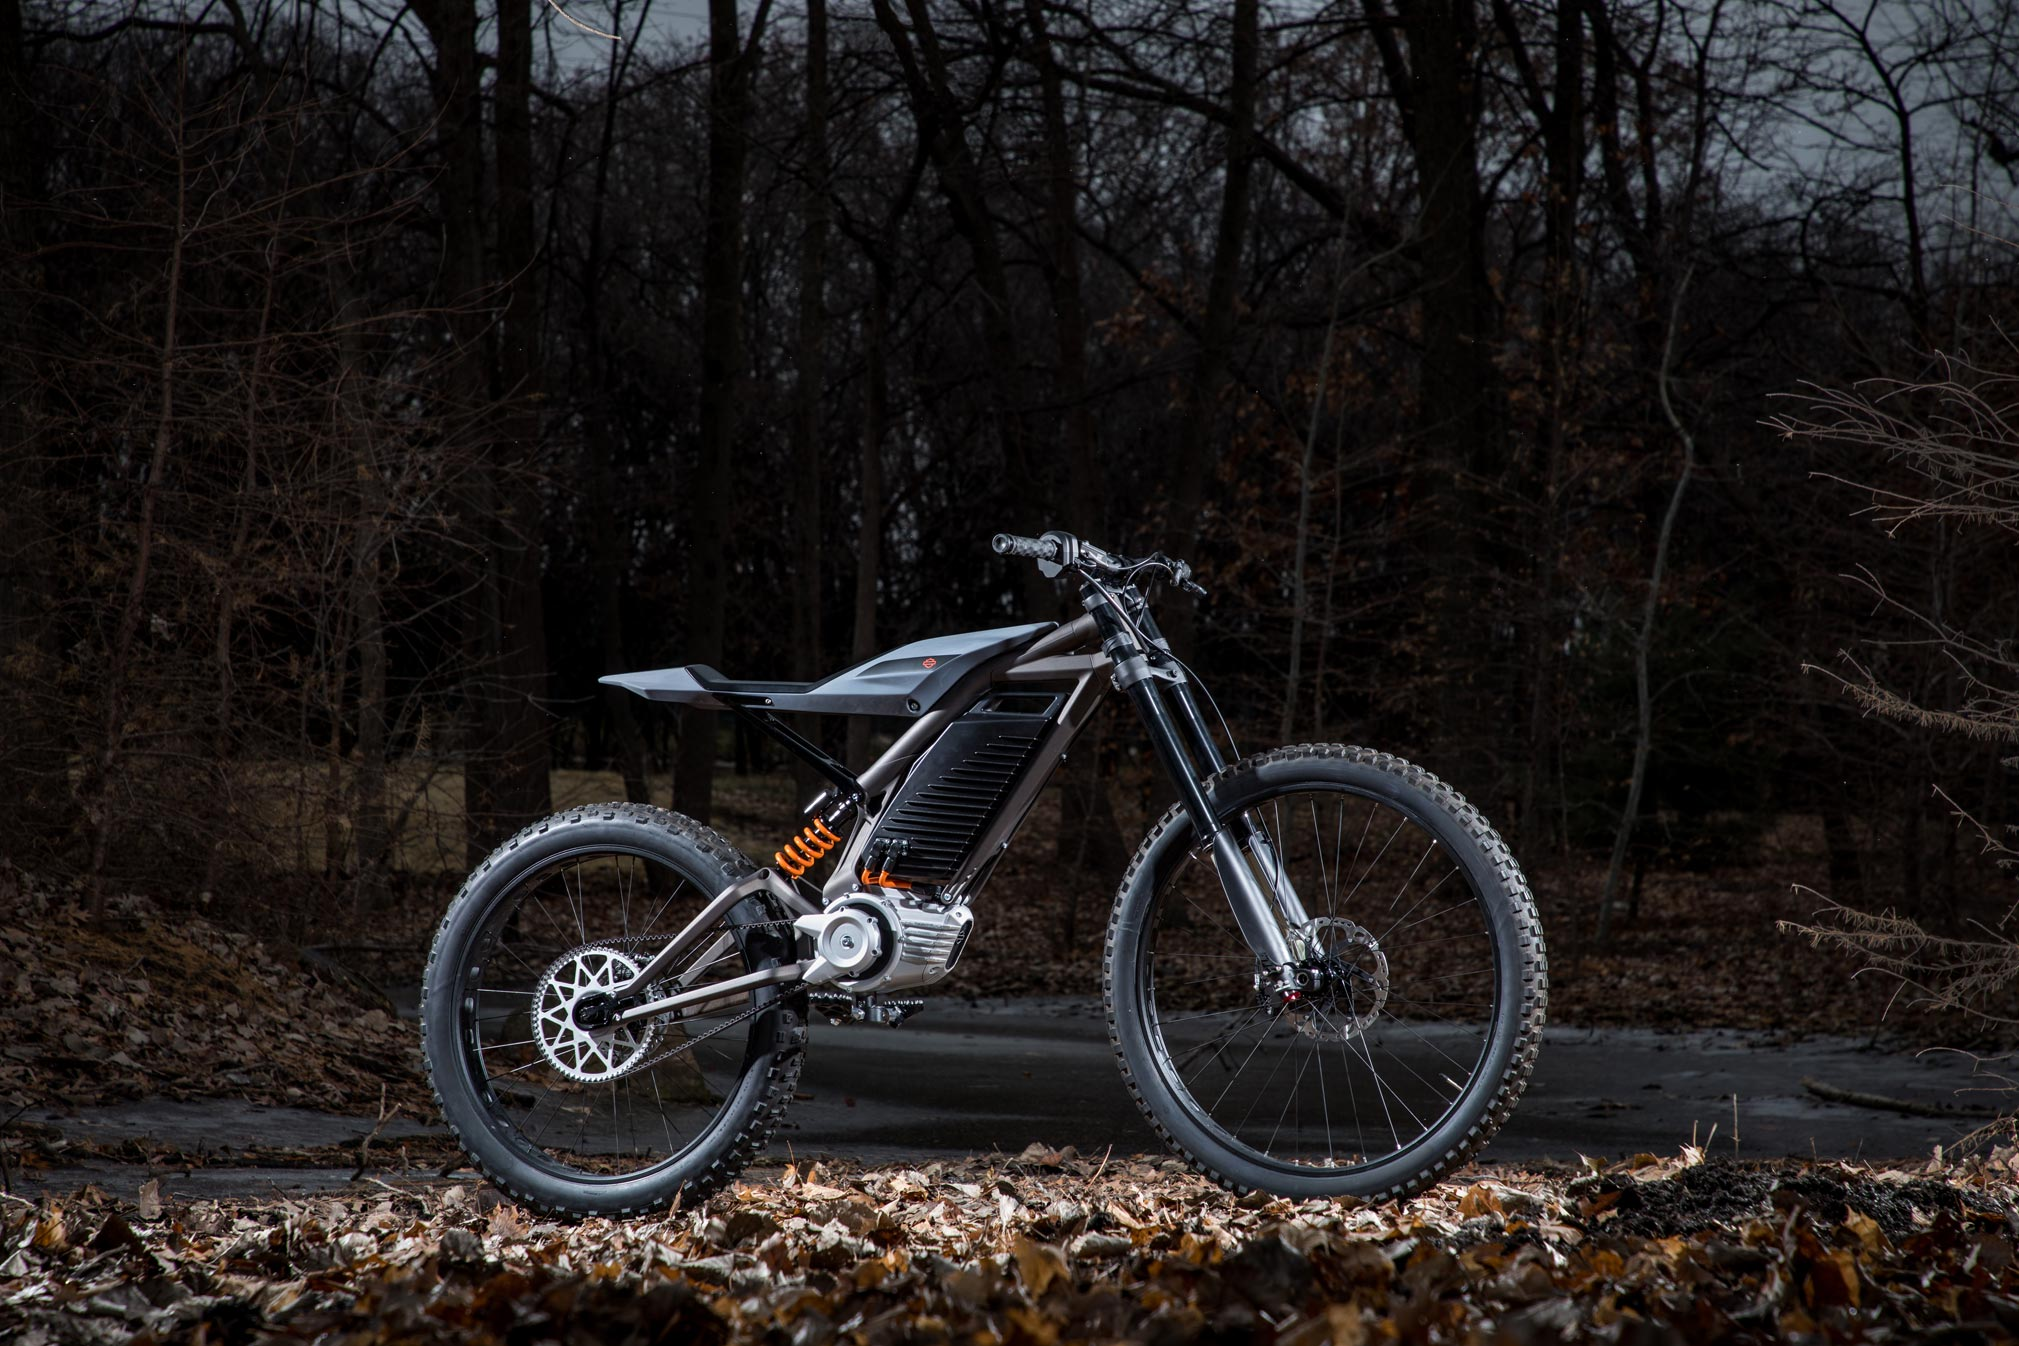 2020 Harley-Davidson Electric Bicycle Guide • Total Motorcycle